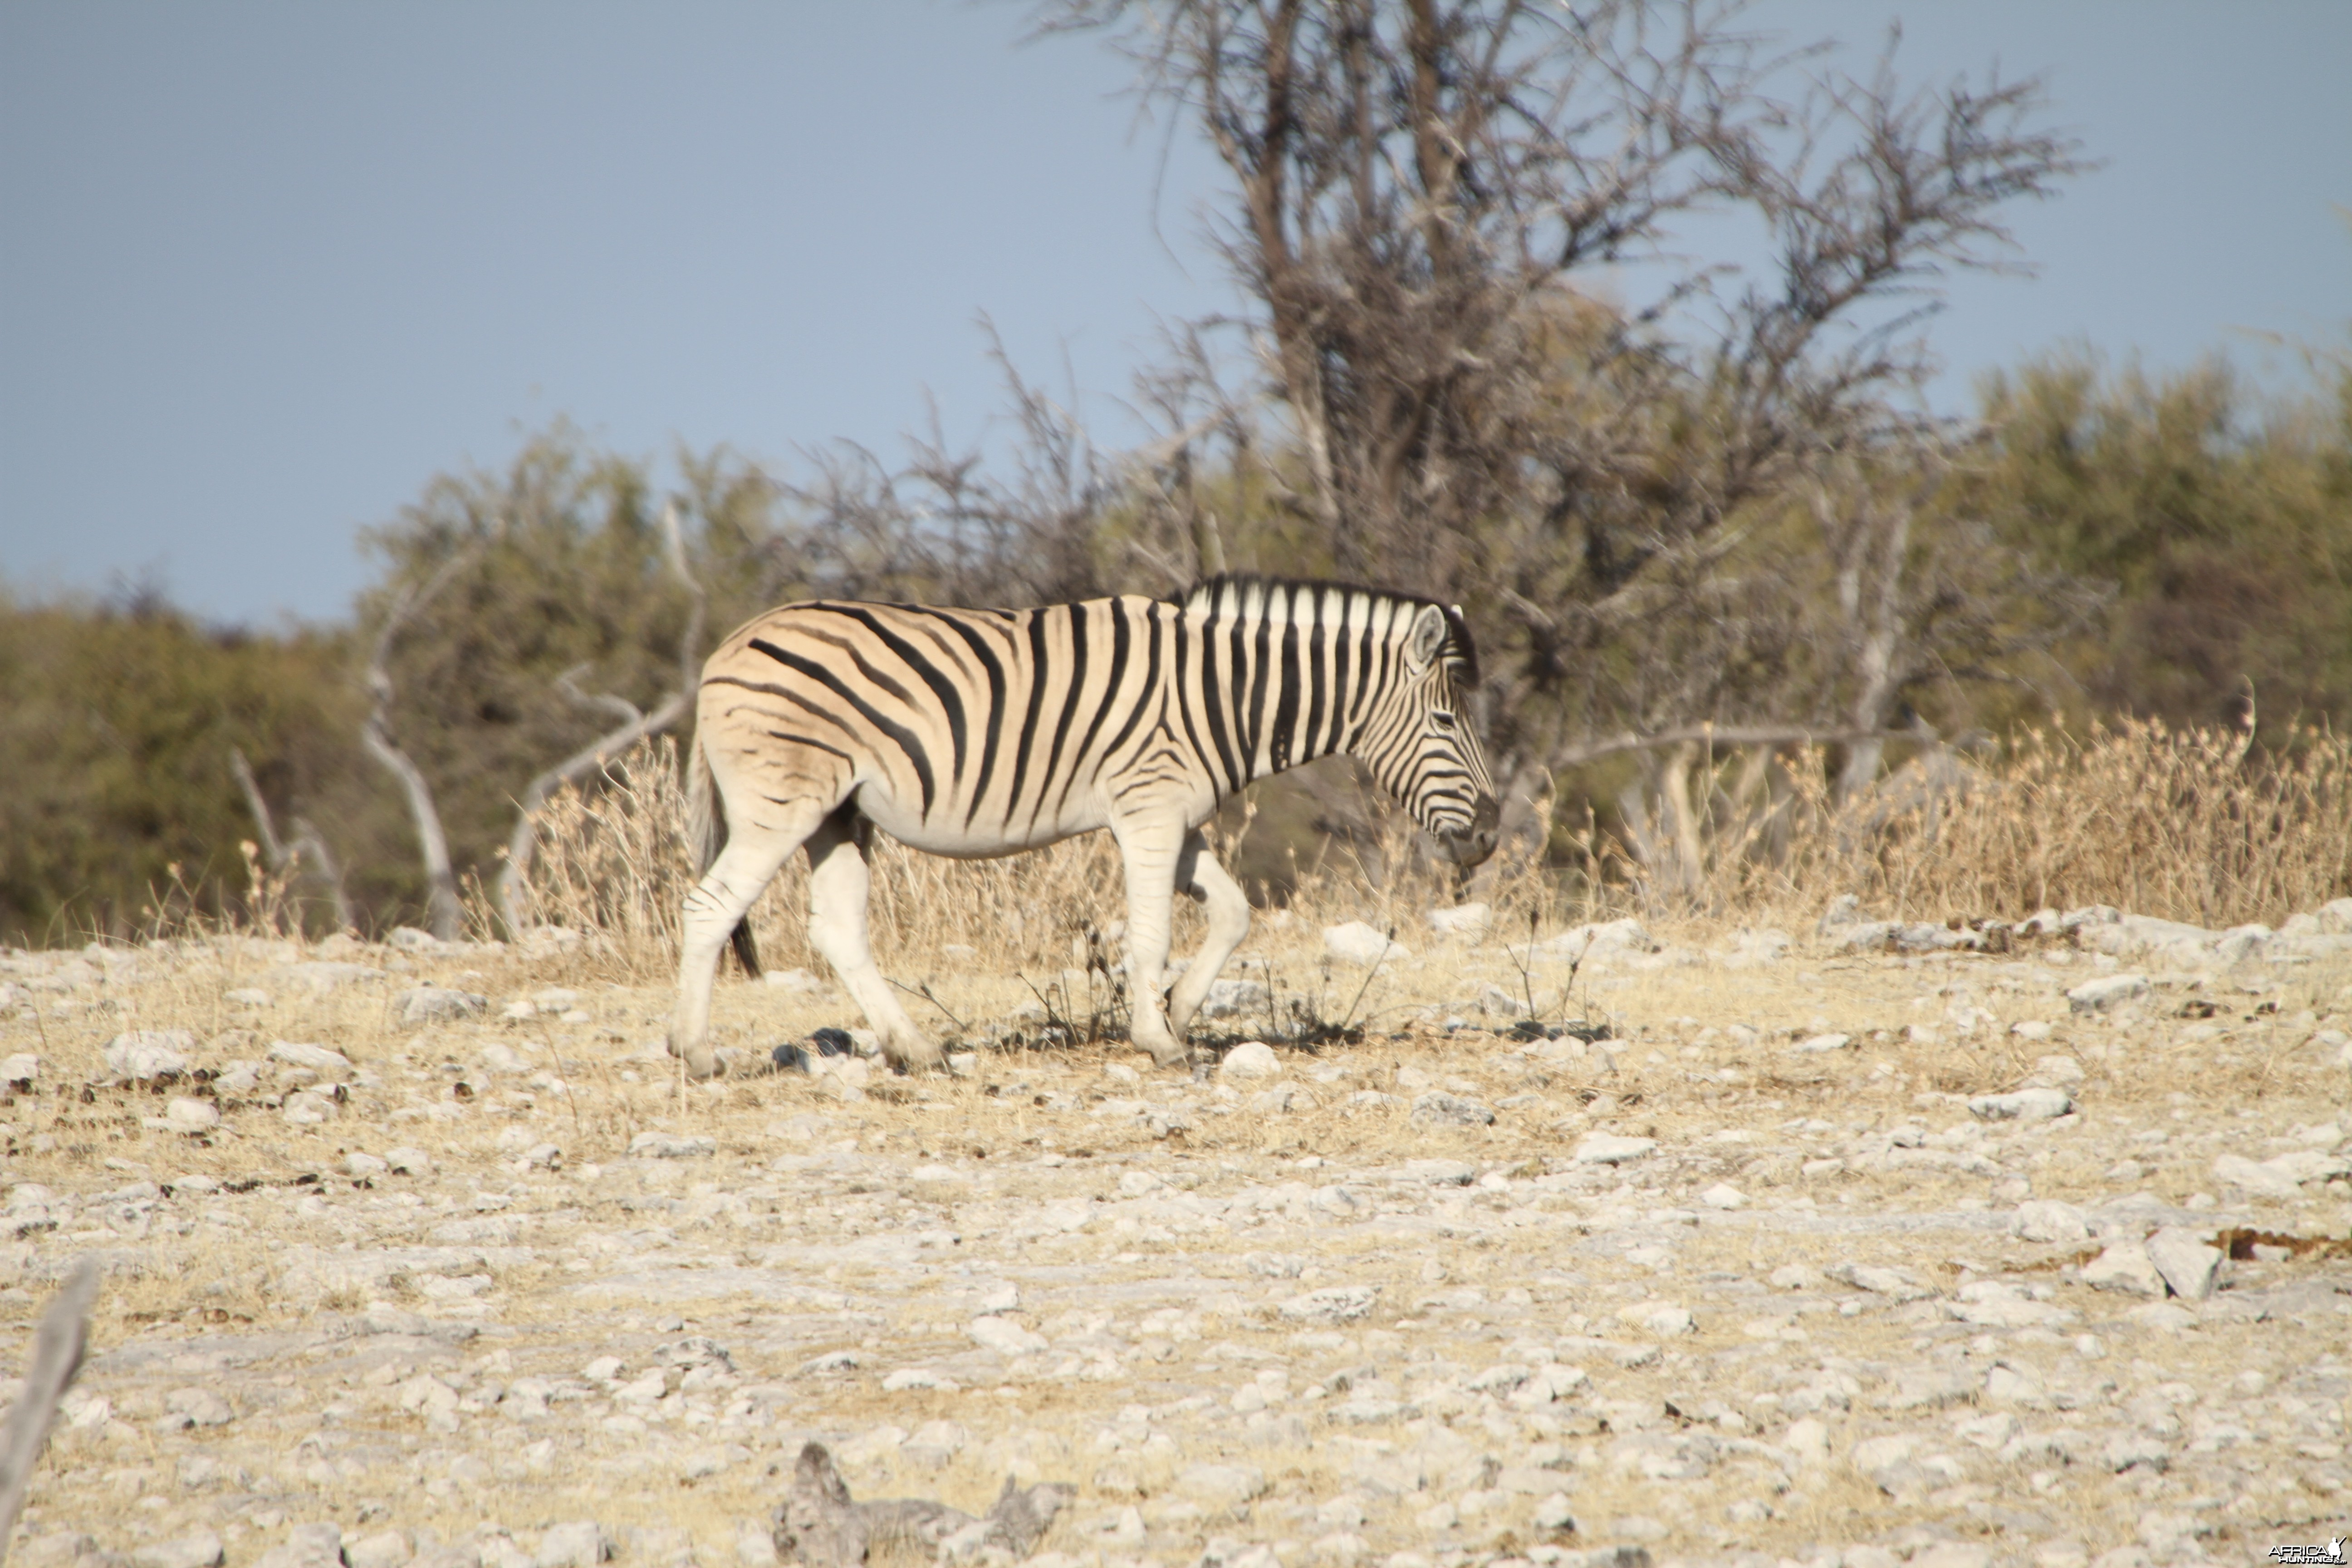 Zebra at Etosha National Park